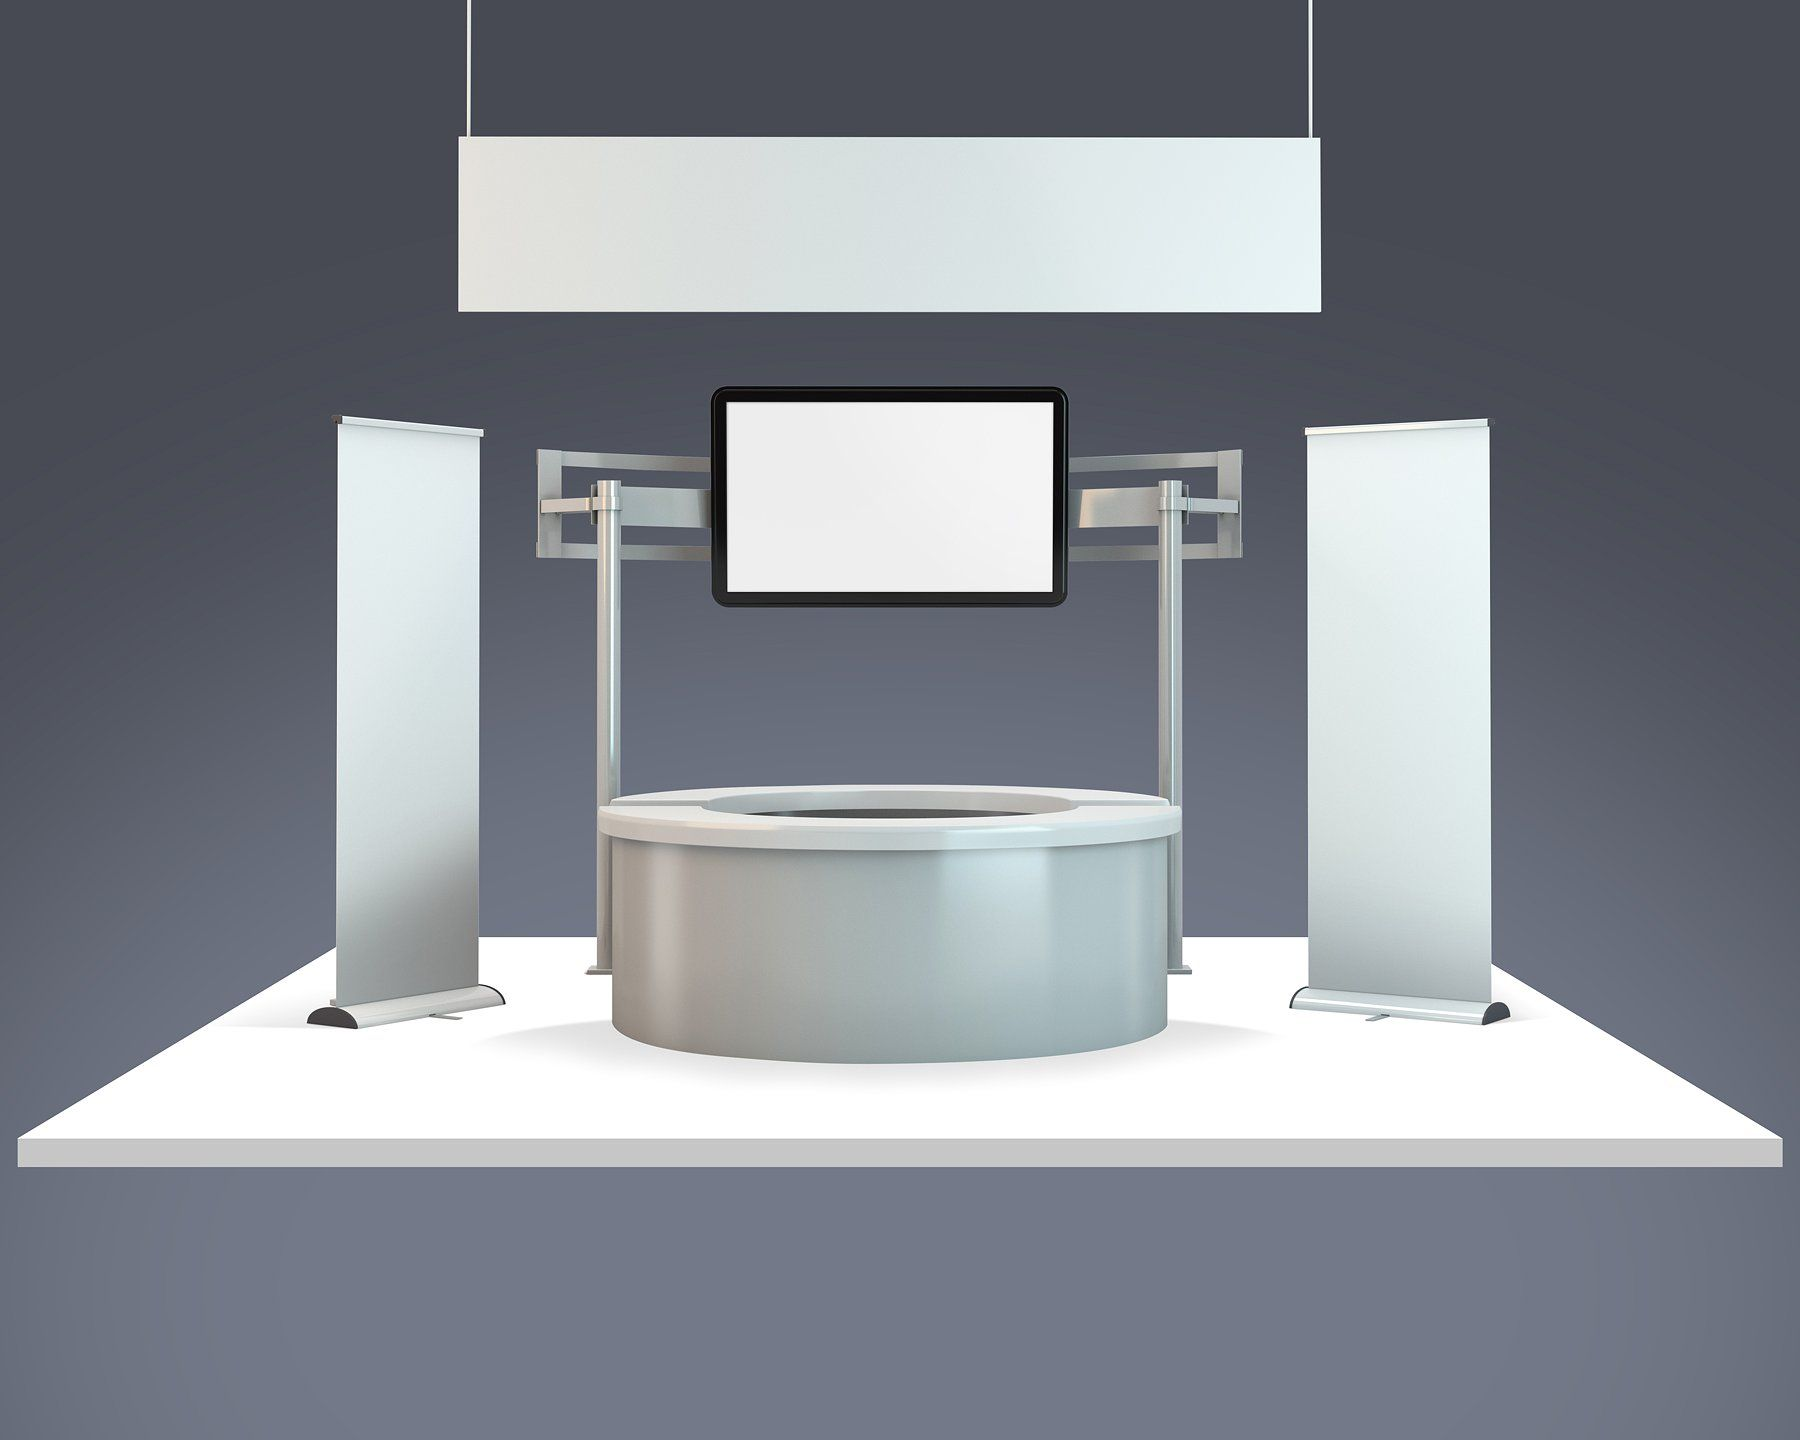 Exhibition Stall Mockup : Trade show exhibition booth mockup by vecto designs on